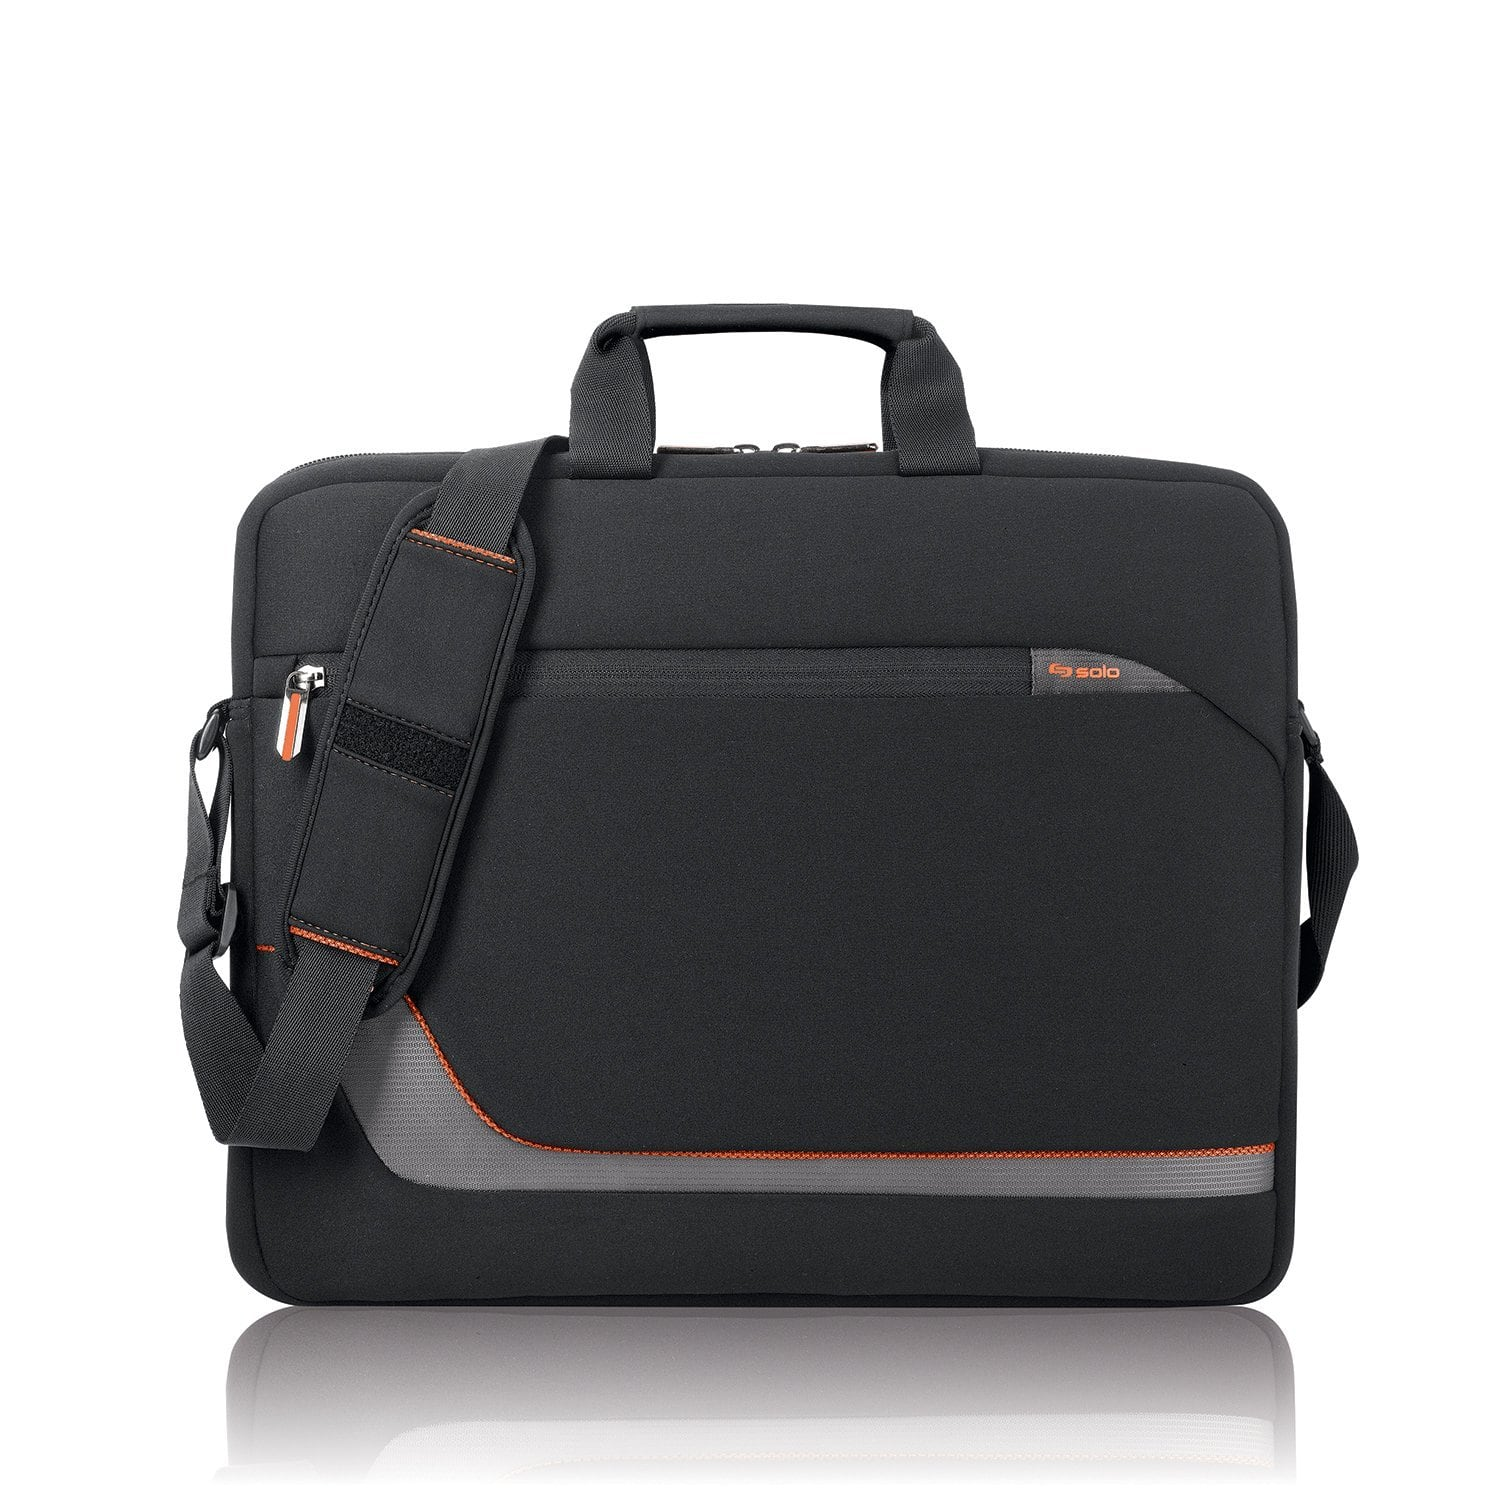 "Solo Urban 17.3"" Laptop Slim Briefcase (Black) $10 + Free S&H w/ Prime or orders $25+ ~ Amazon"